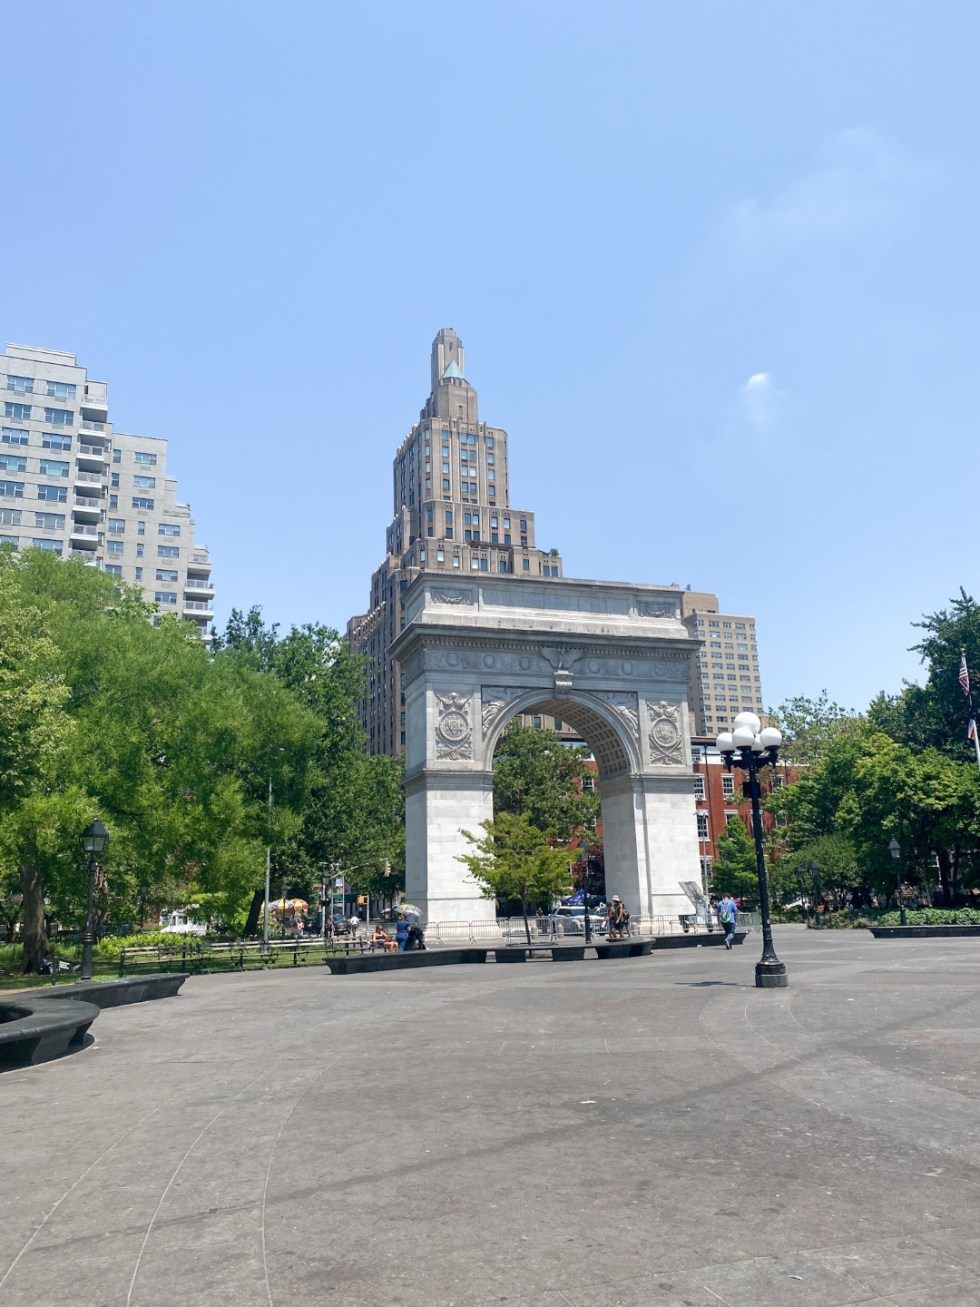 NYC Summer Weekend: Things to Do in NYC in the Summer - I'm Fixin' To - @imfixintoblog   NYC Summer Weekend by popular NC travel blog, I'm Fixin' To: image of the Arc De Triumph in Central Park.